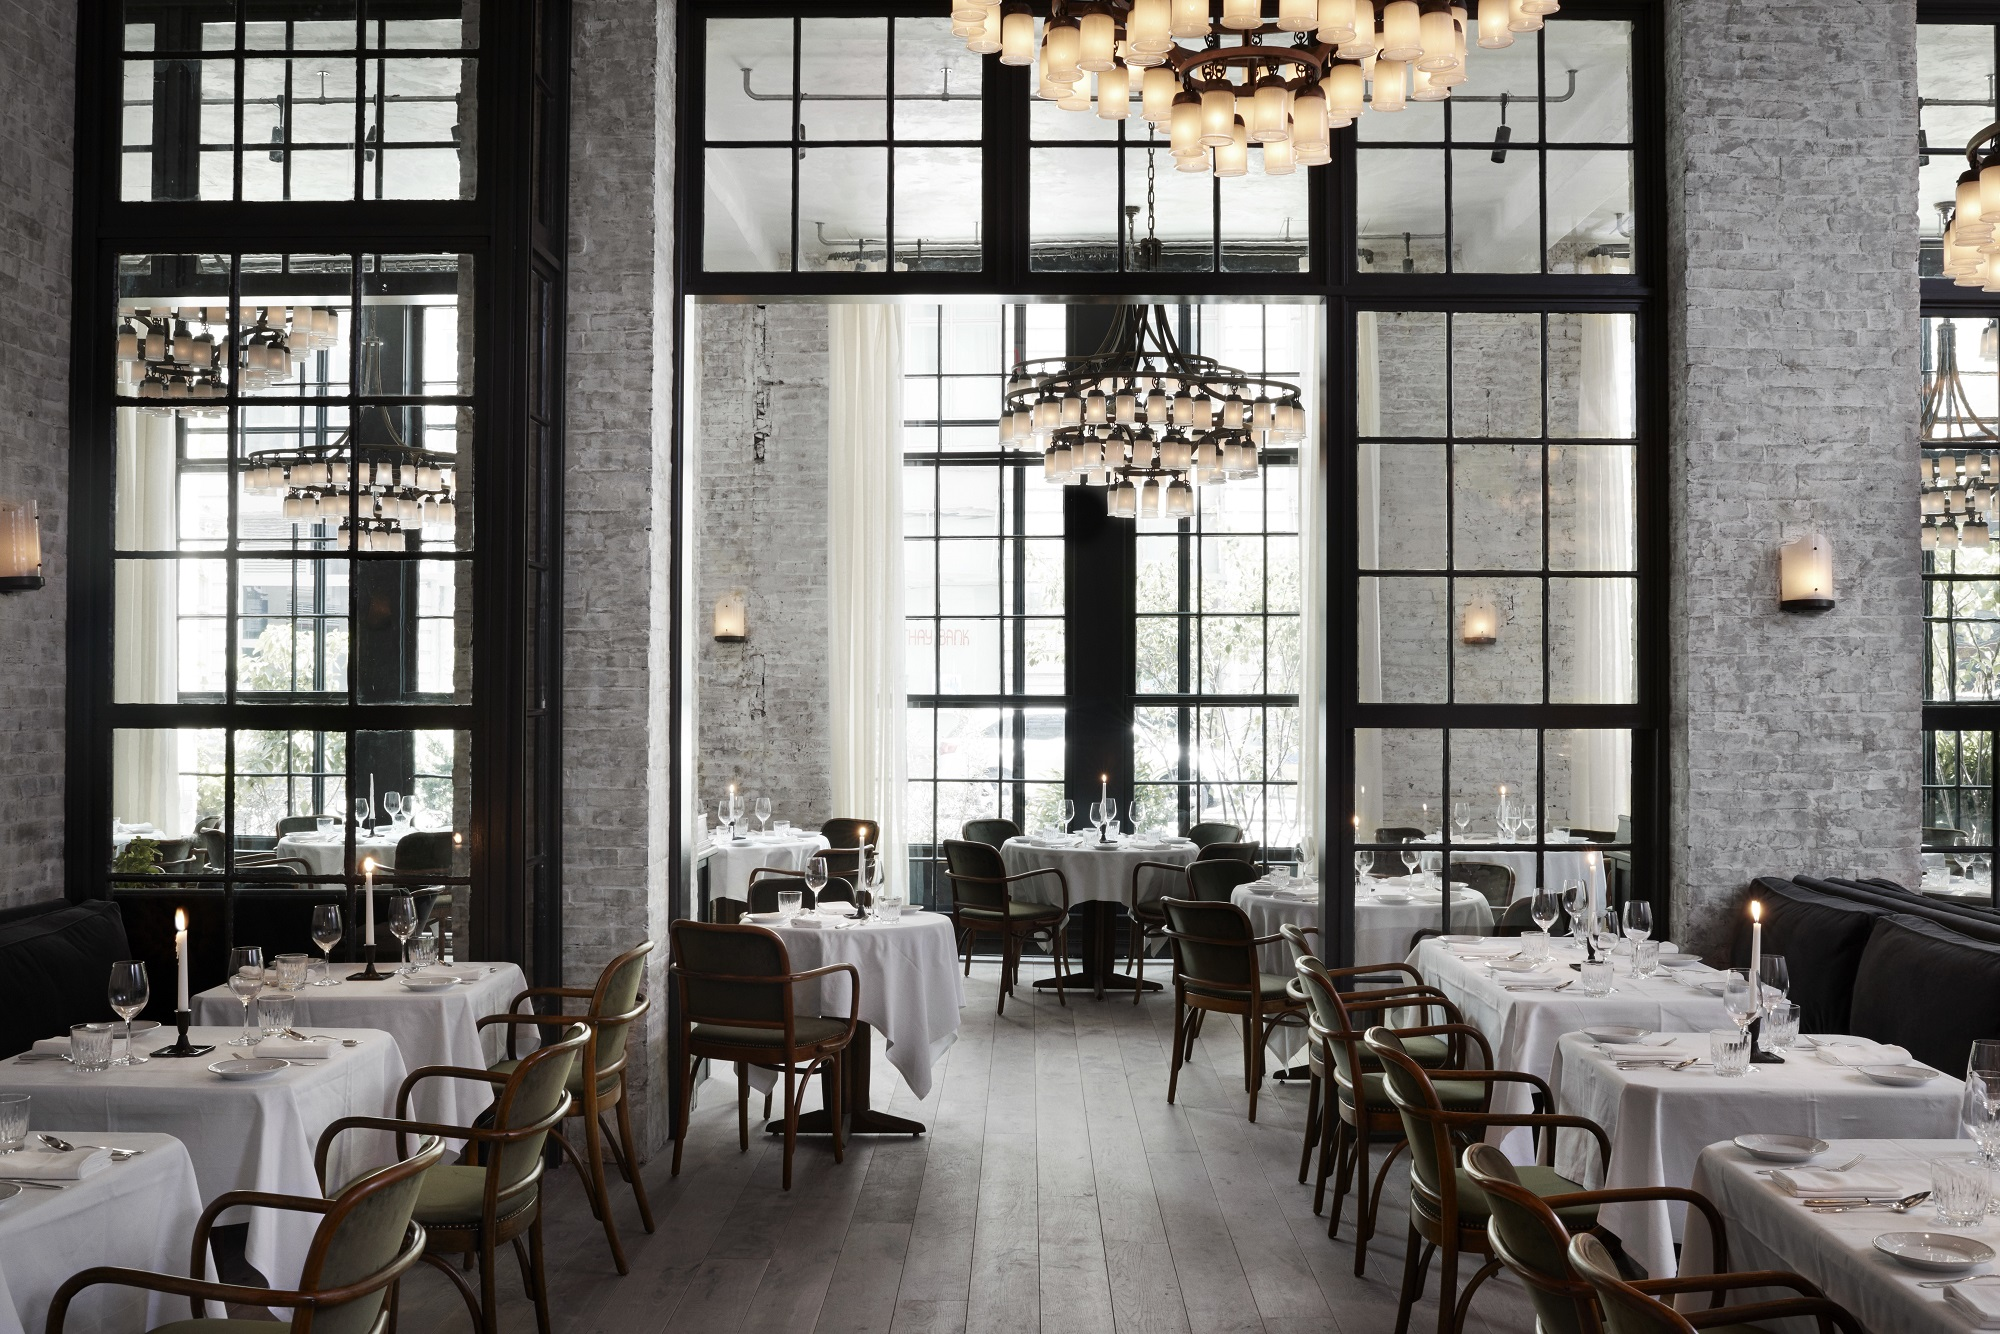 Take a look at Roman & Williams – Designed Le Coucou Restaurant jean-louis deniot Jean-Louis Deniot: Meet the Extraordinary Interior Designer Roman Williams 1 jean-louis deniot Jean-Louis Deniot: Meet the Extraordinary Interior Designer Roman Williams 1